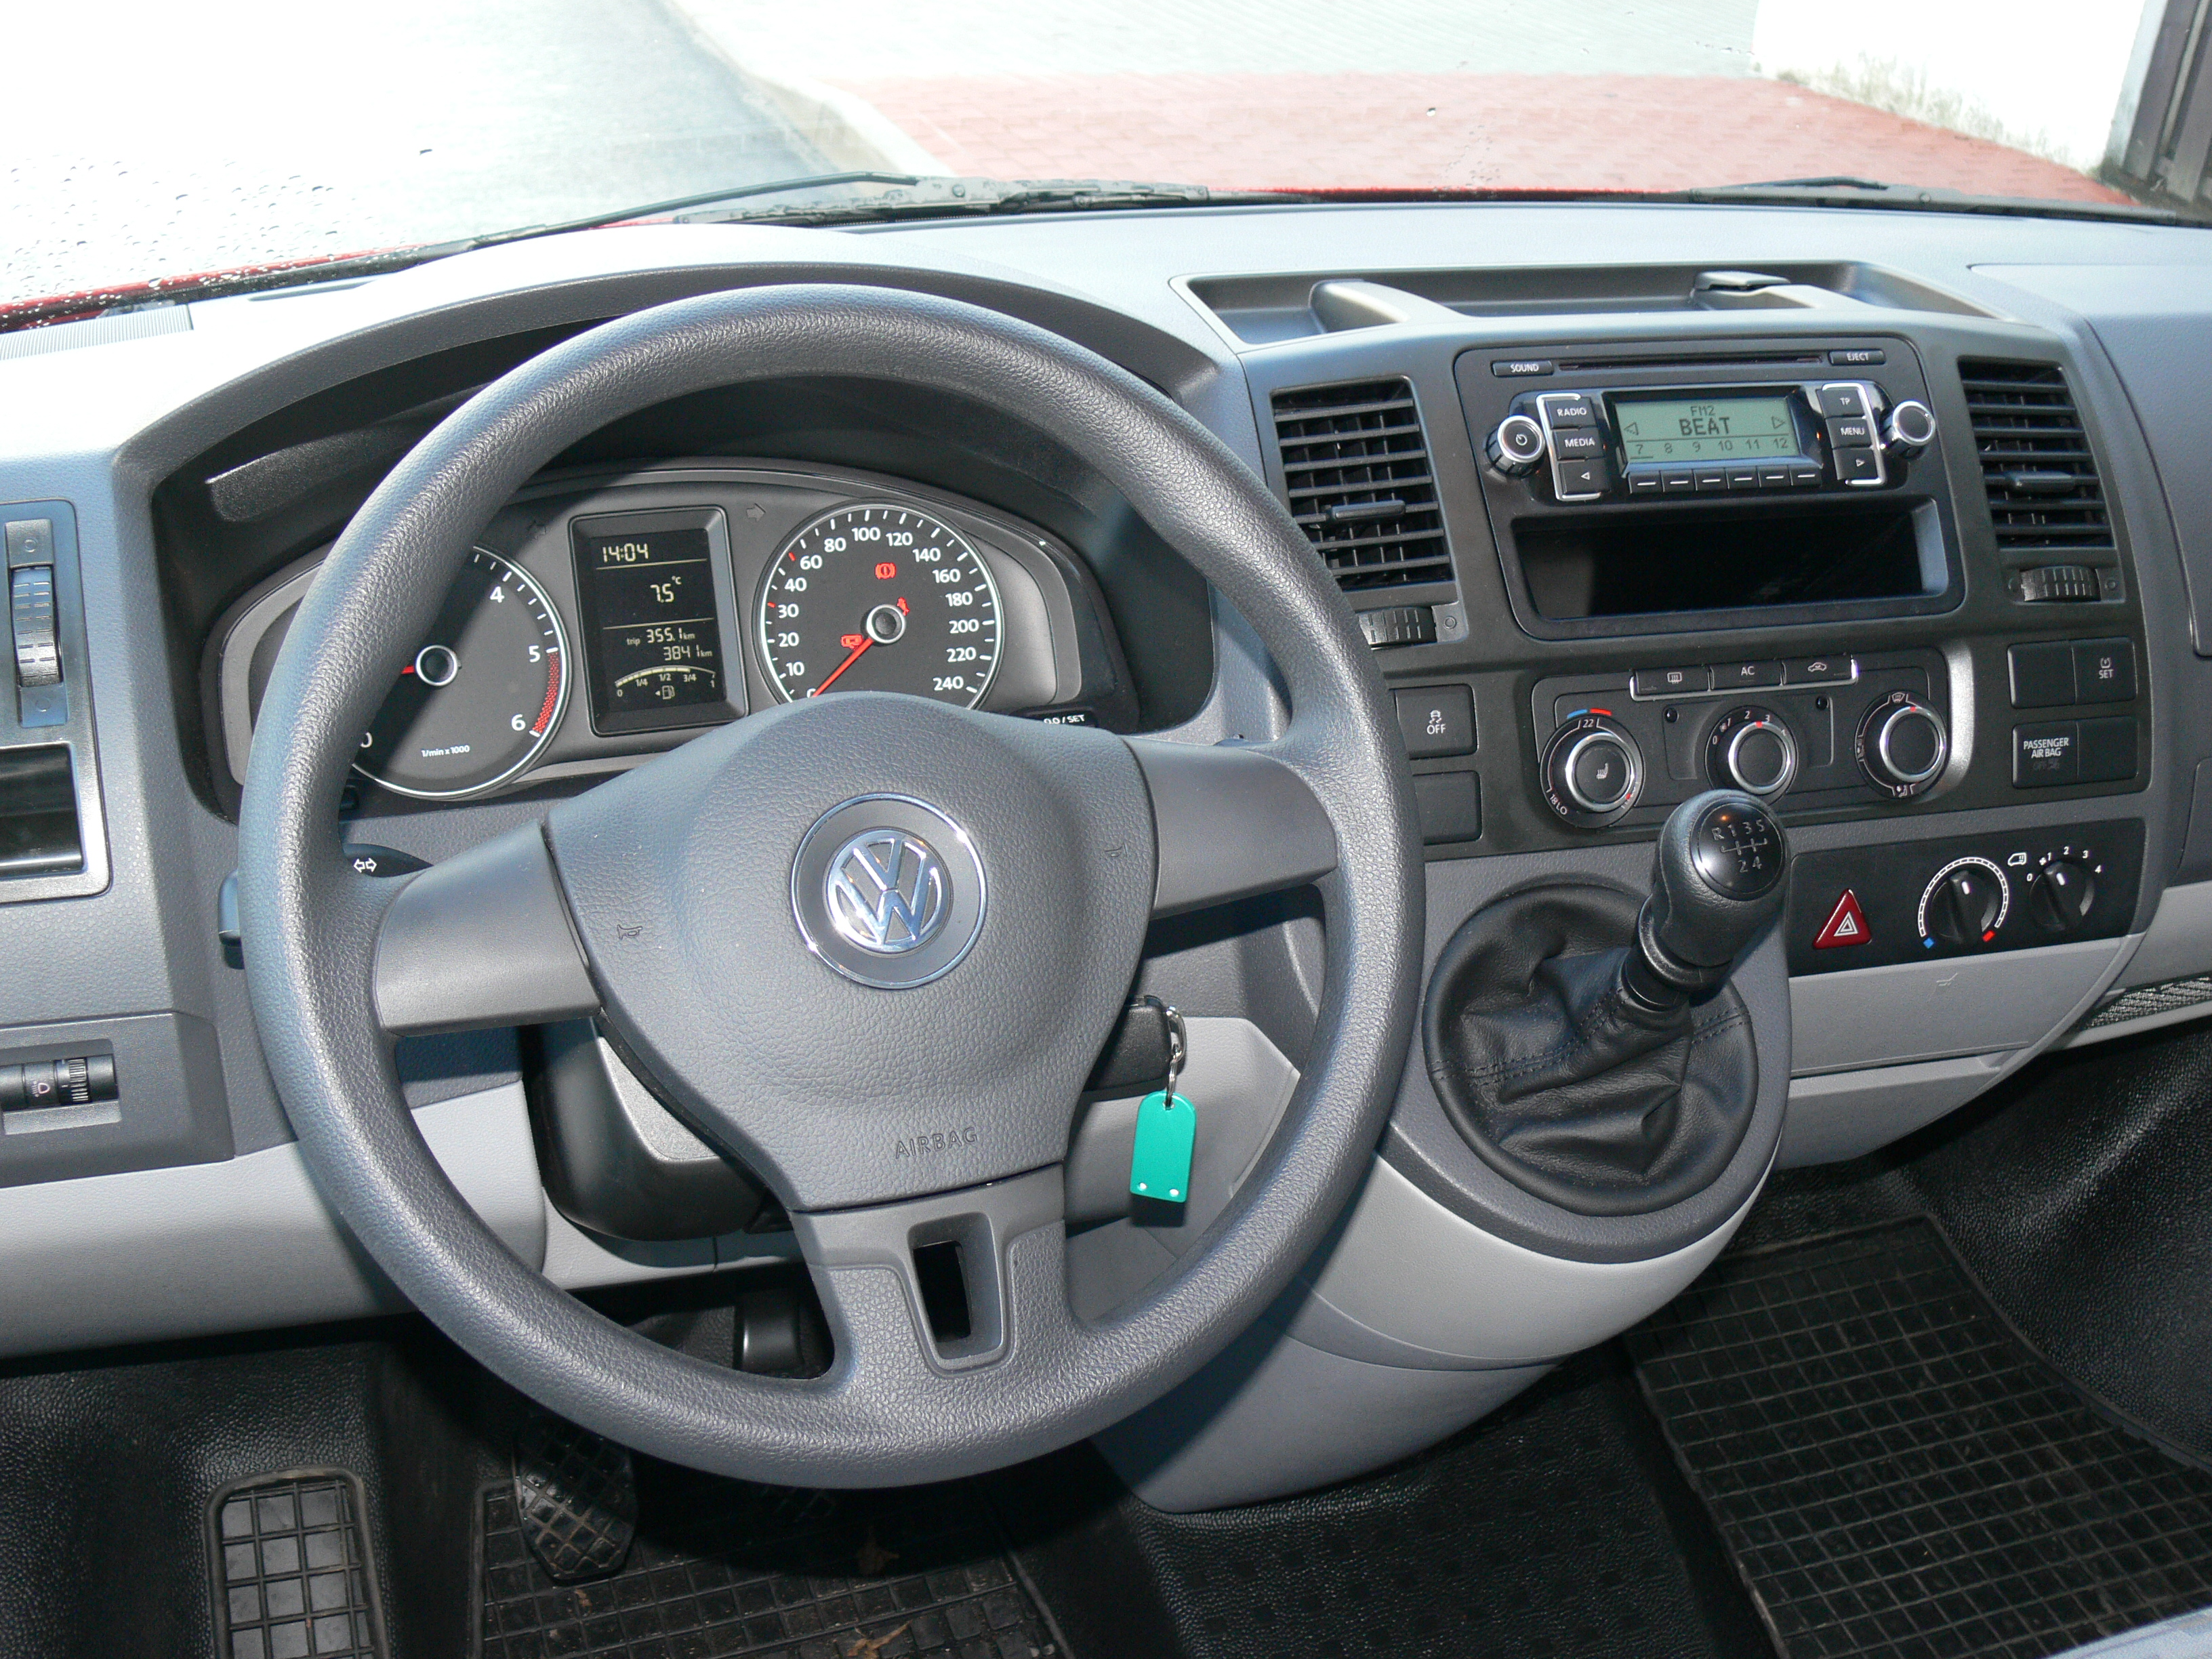 VW Transporter T5 - legenda mládne